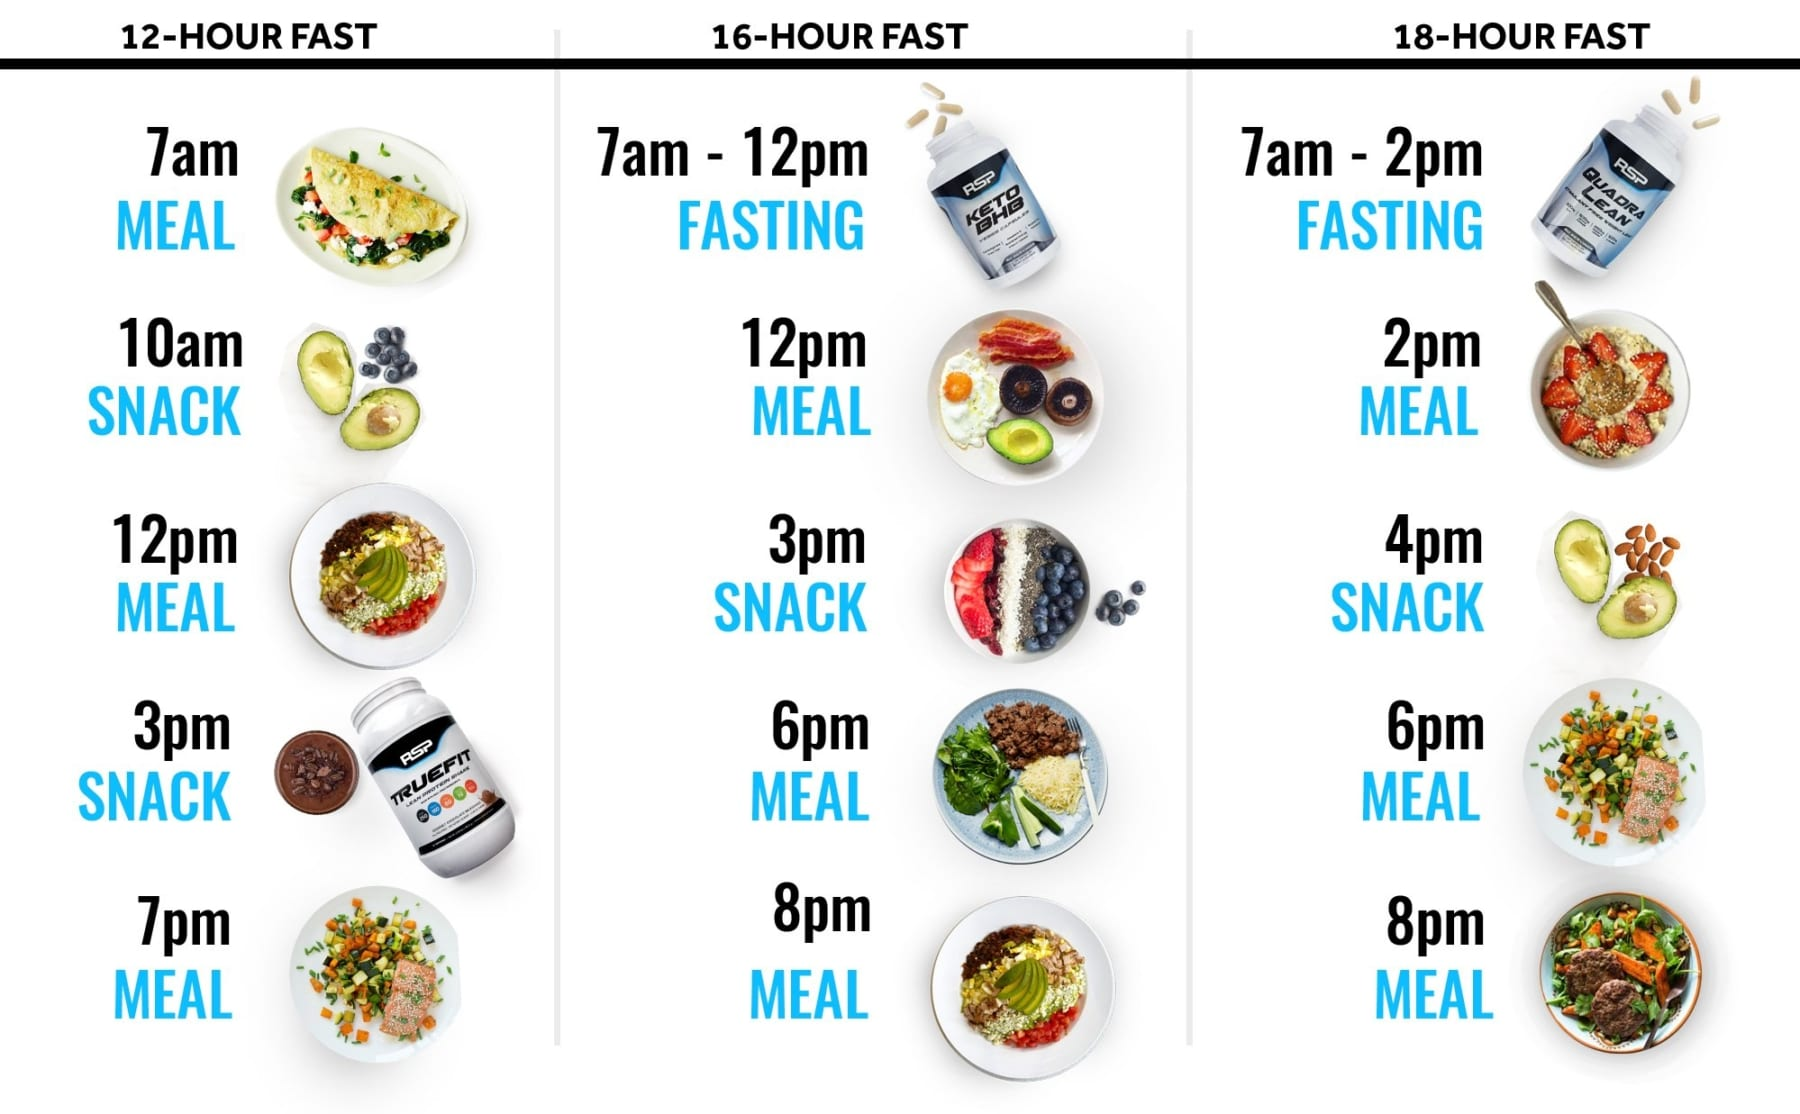 fasting for 16 hours diet